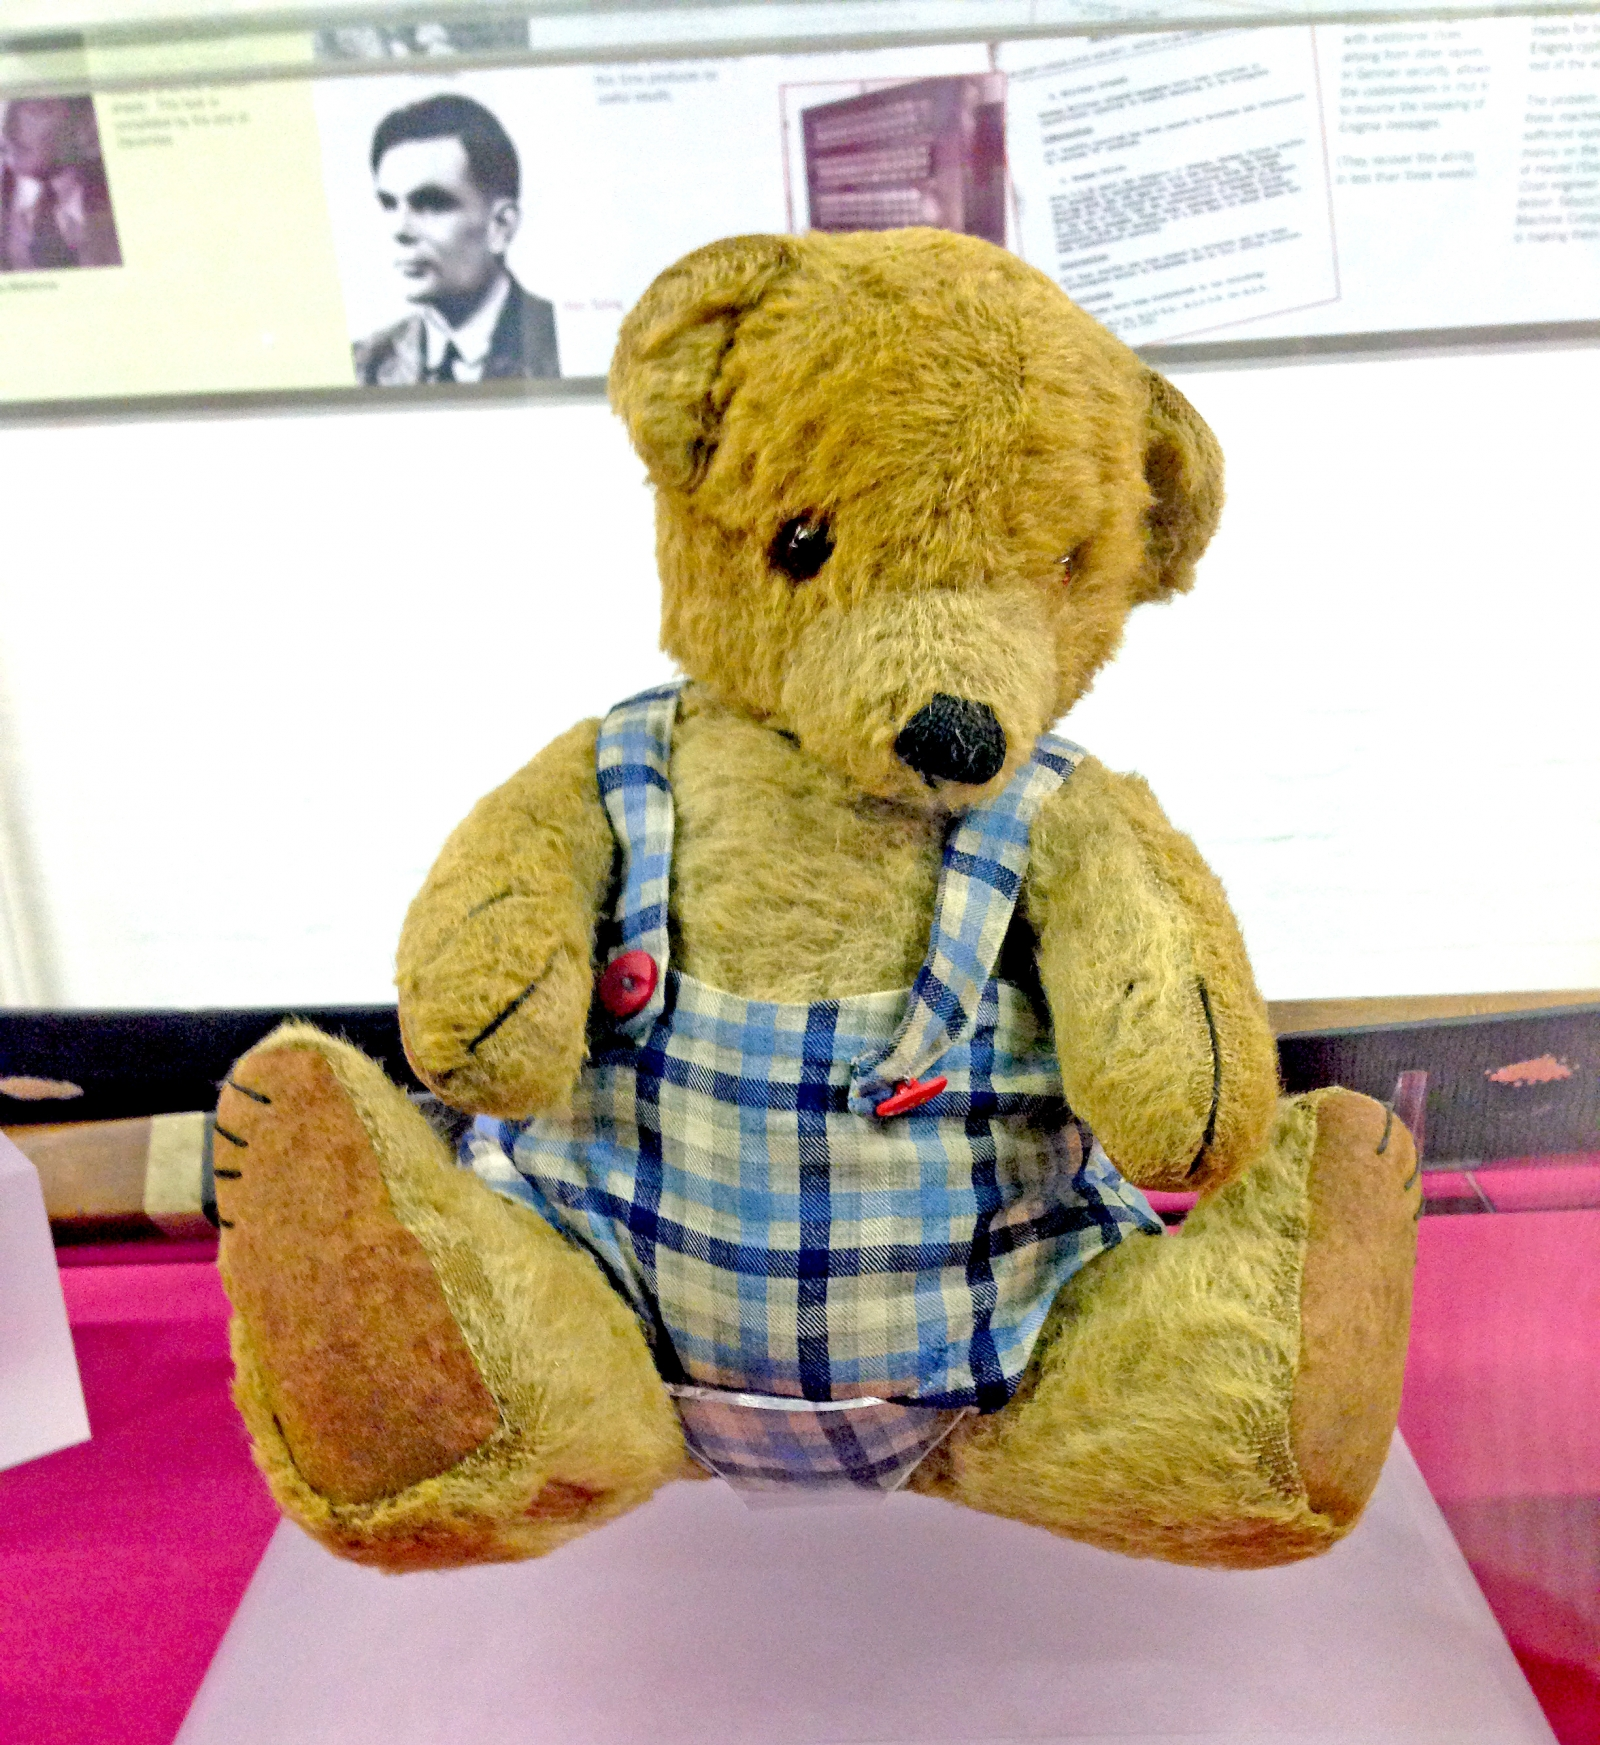 Alan Turing's teddy bear Porgy, whom he used to practice his speeches on